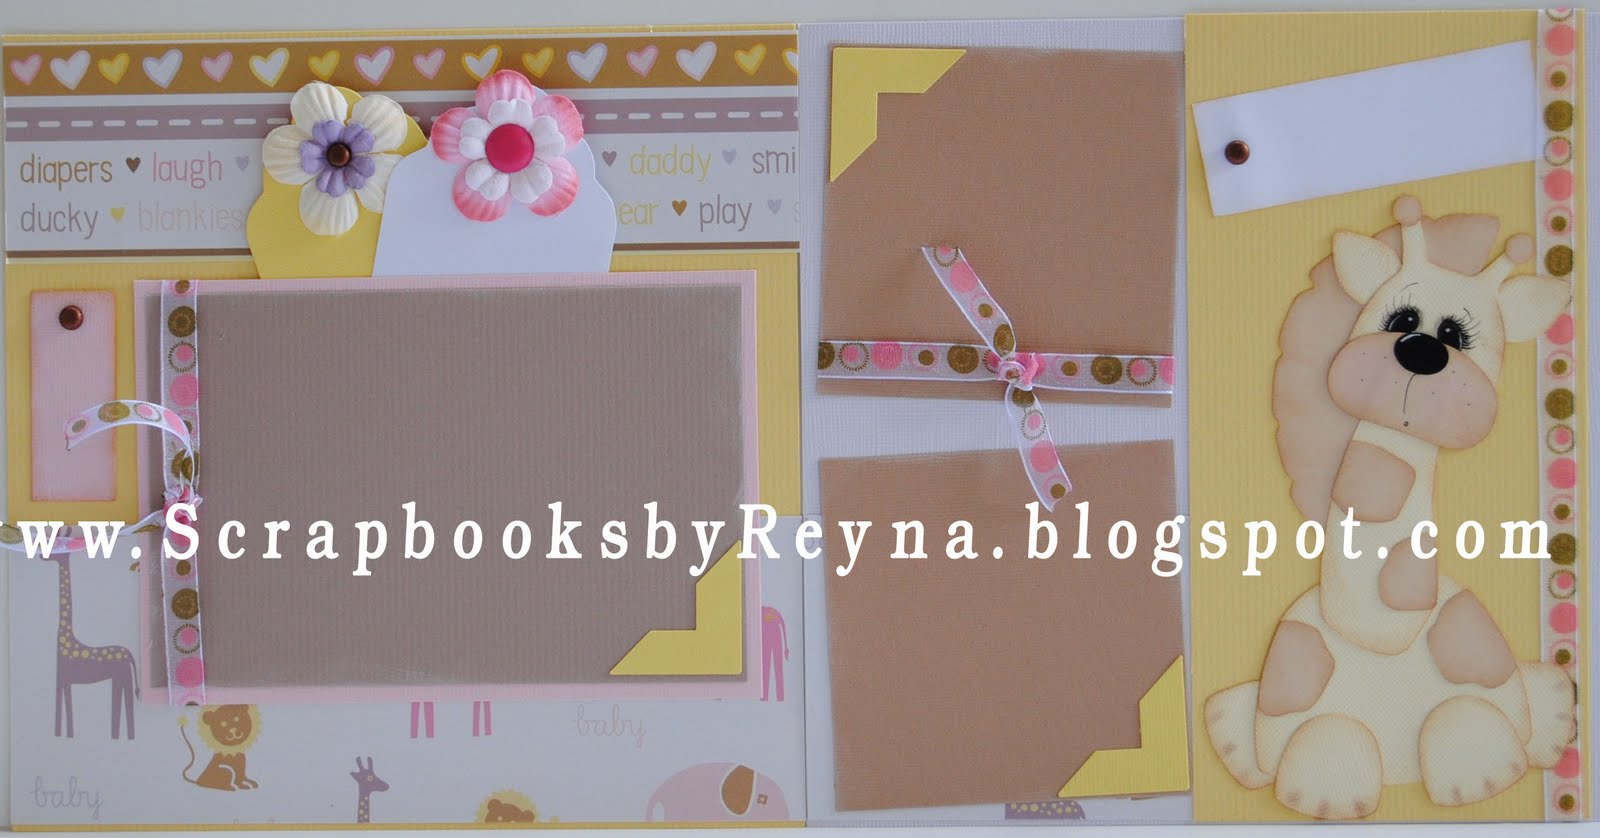 How to scrapbook 8x8 layouts - 8x8 Random Scrapbook Pages Layouts